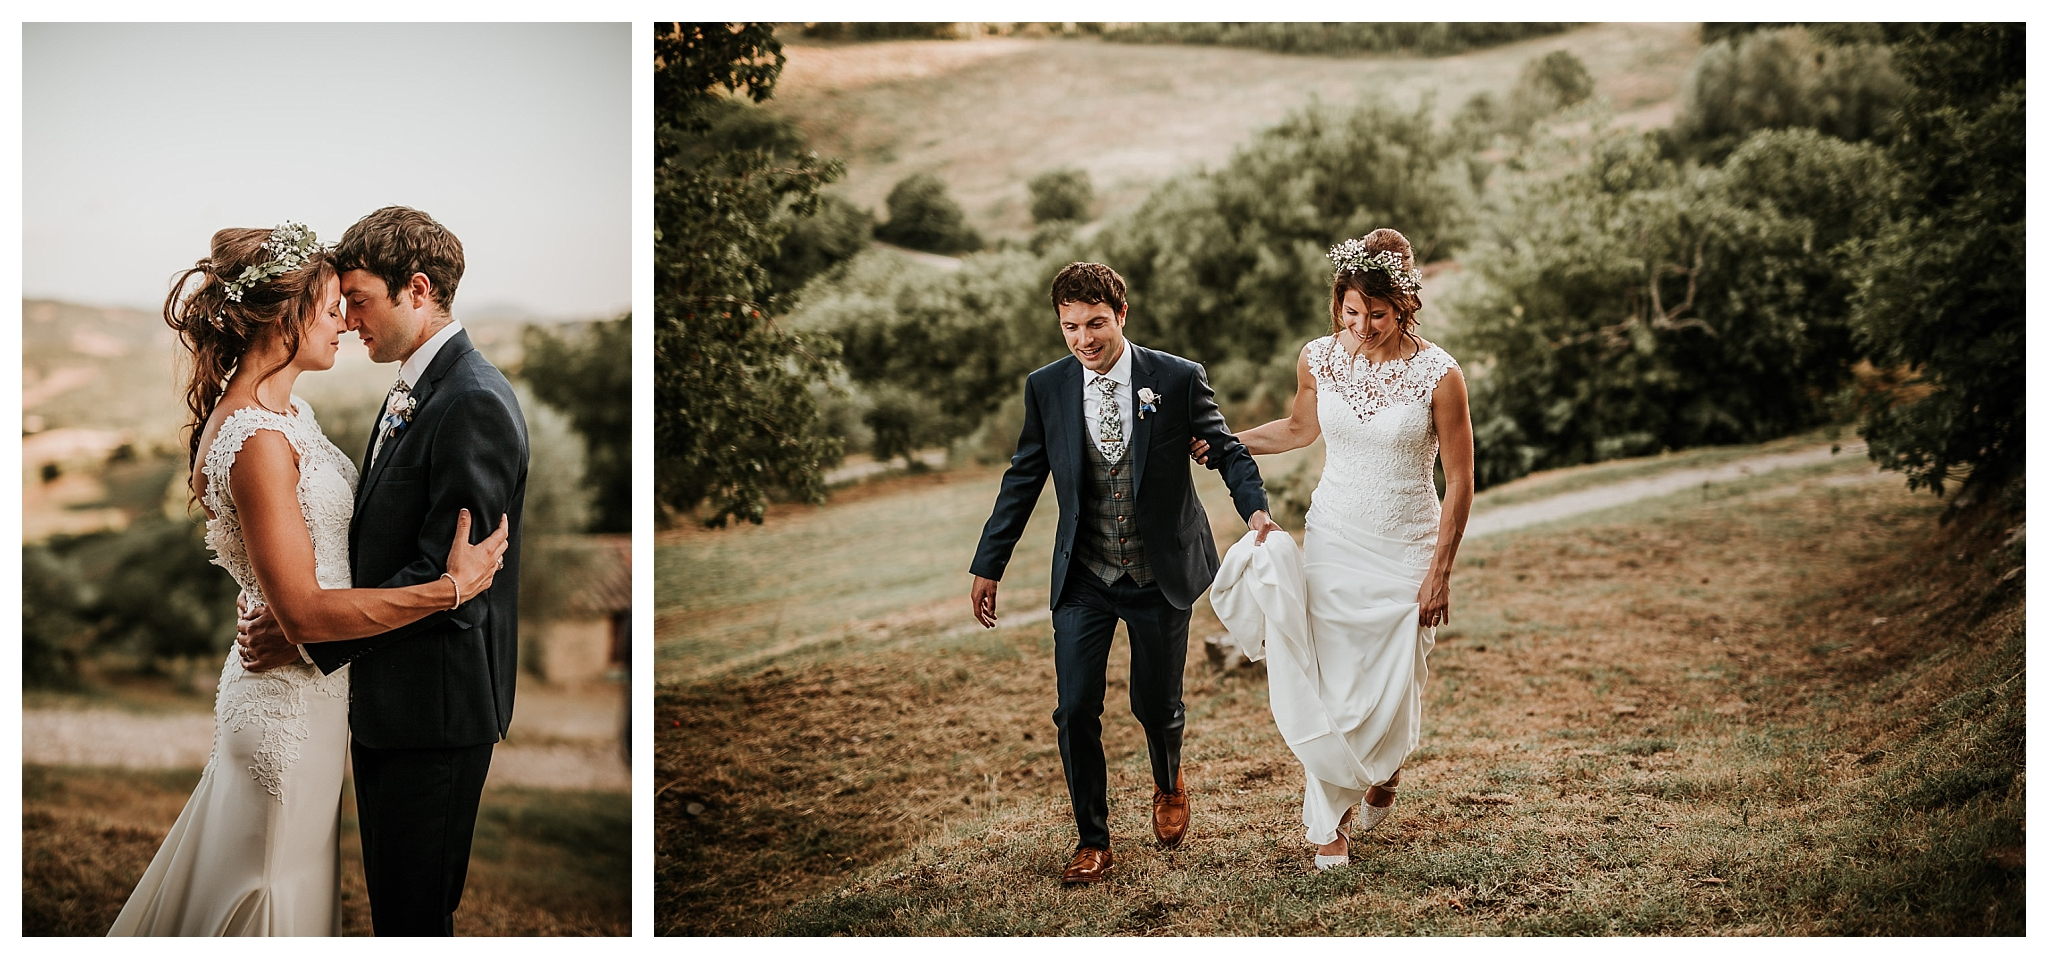 Couple photoshoot in countryside landscape in Italy